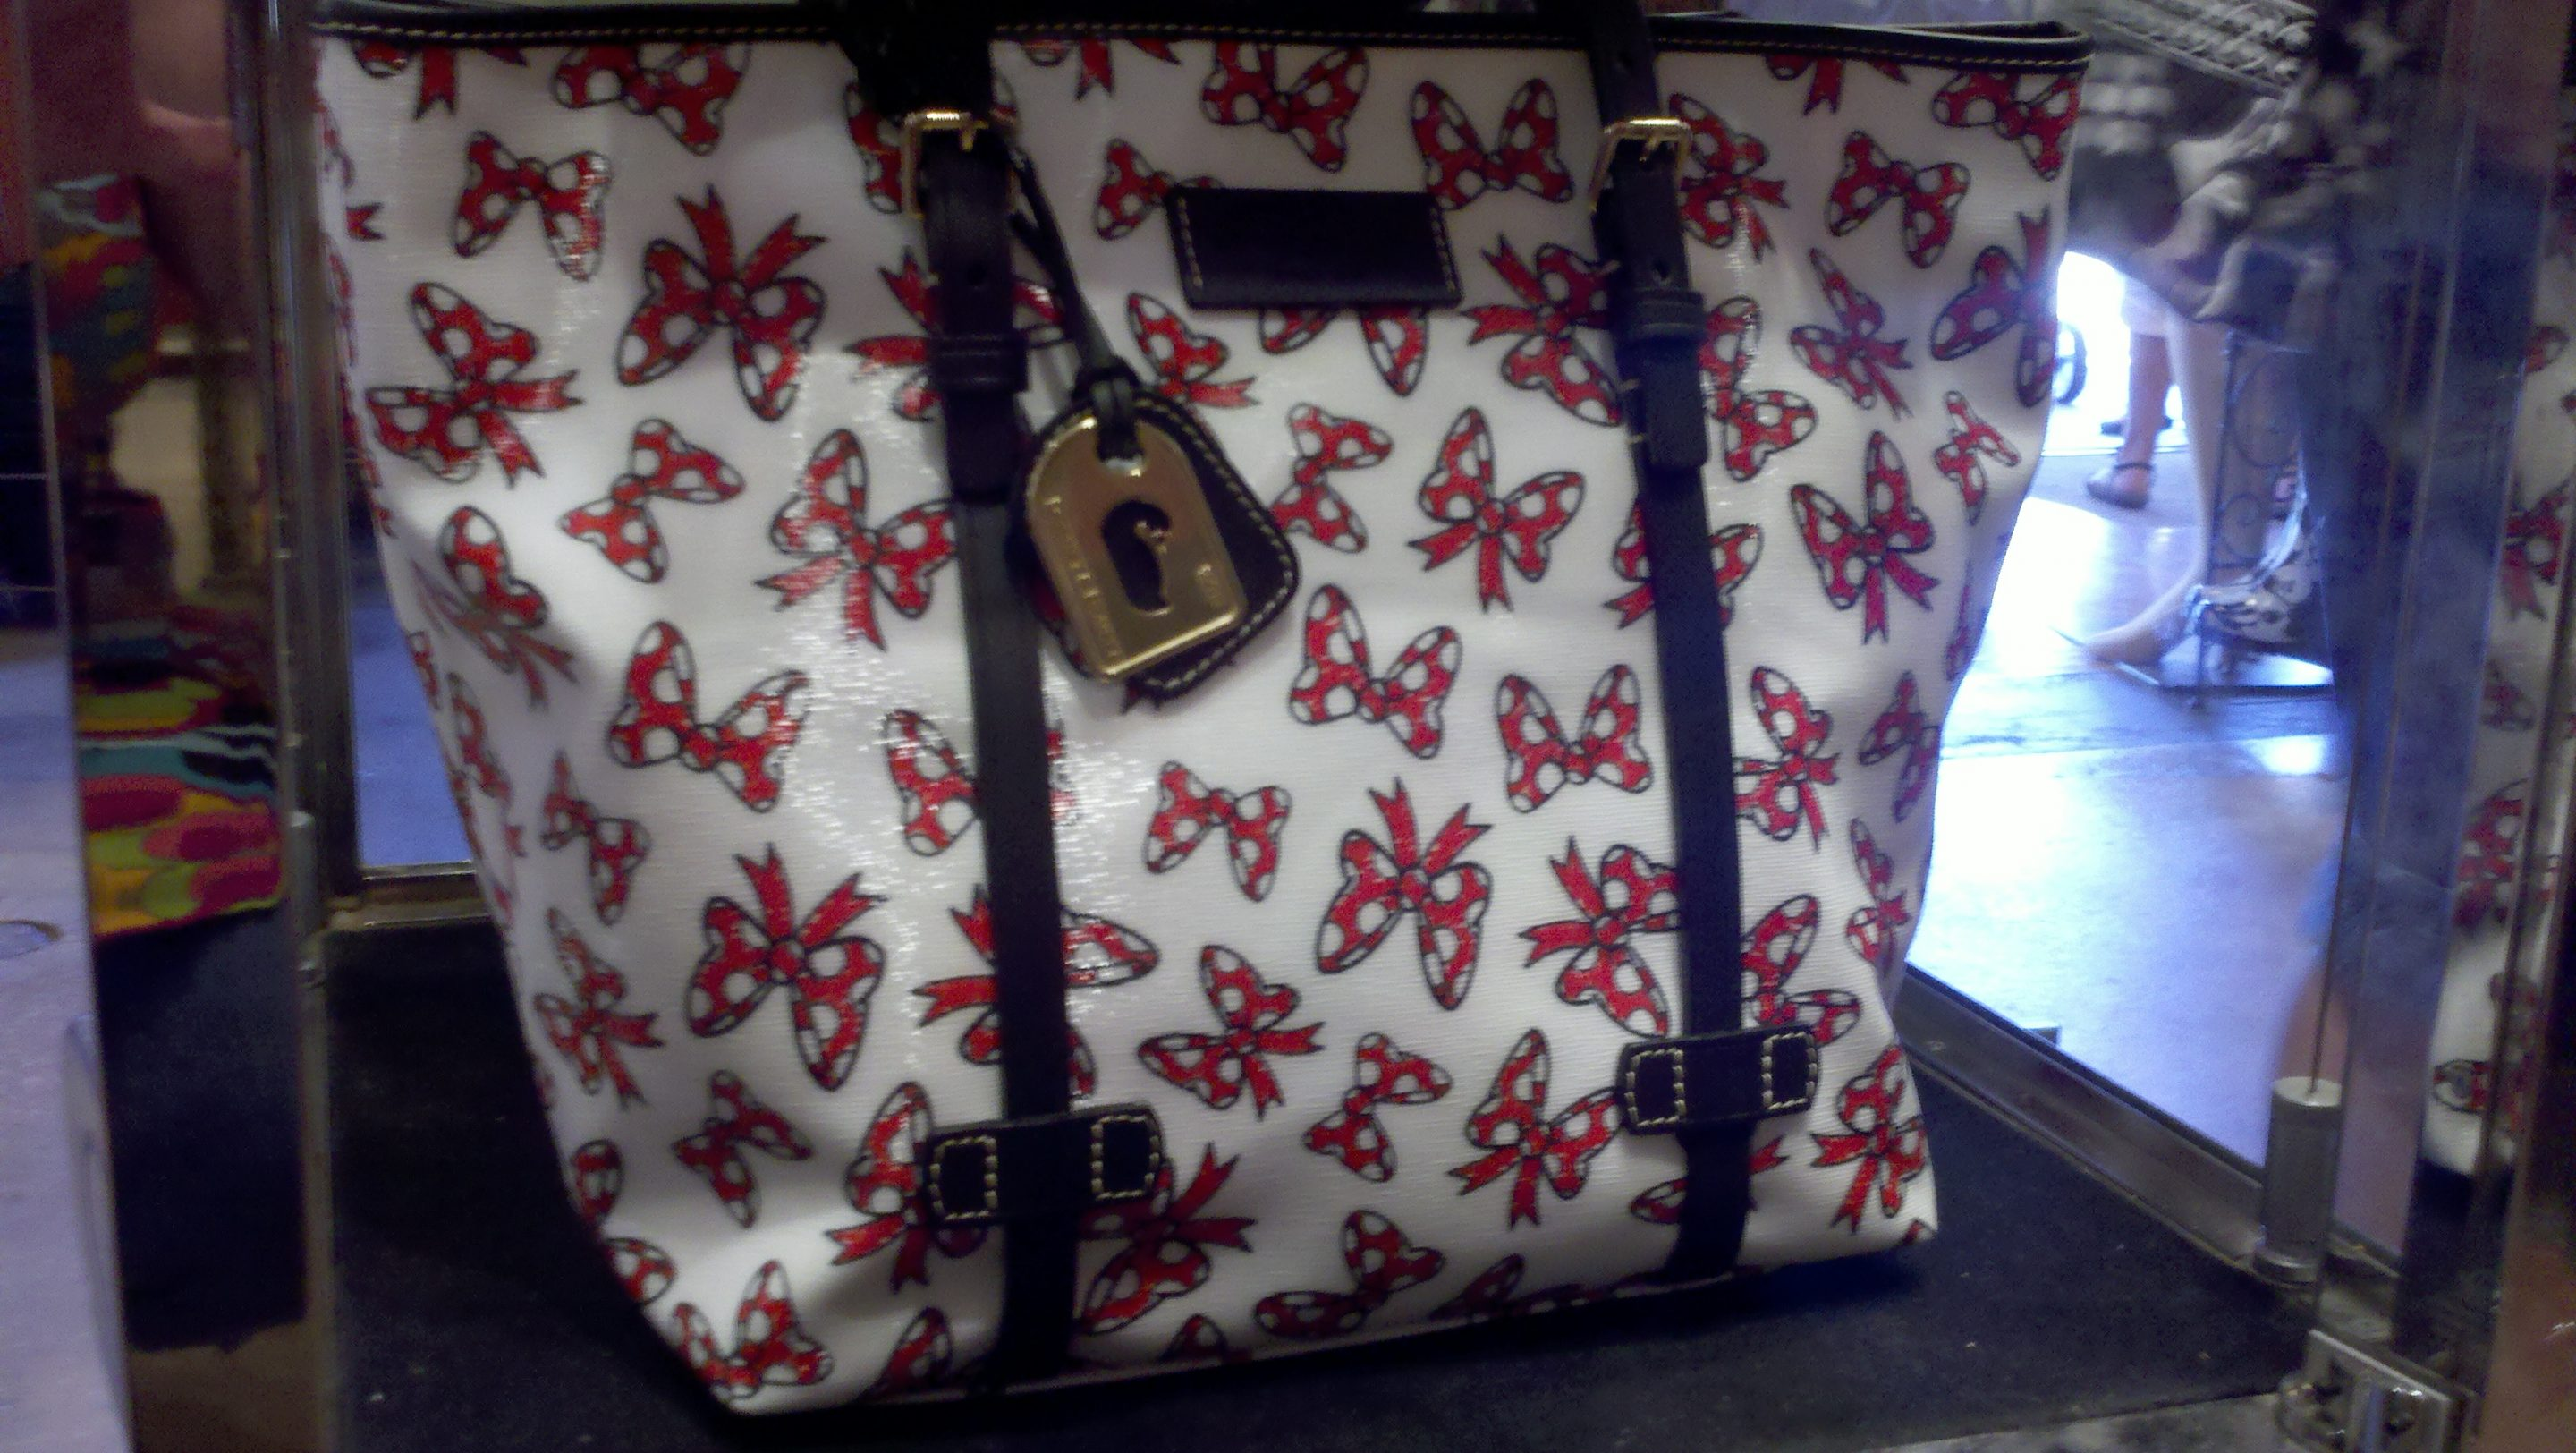 NEW! Disney Dooney & Bourke Minnie Bow Purses in Black and White